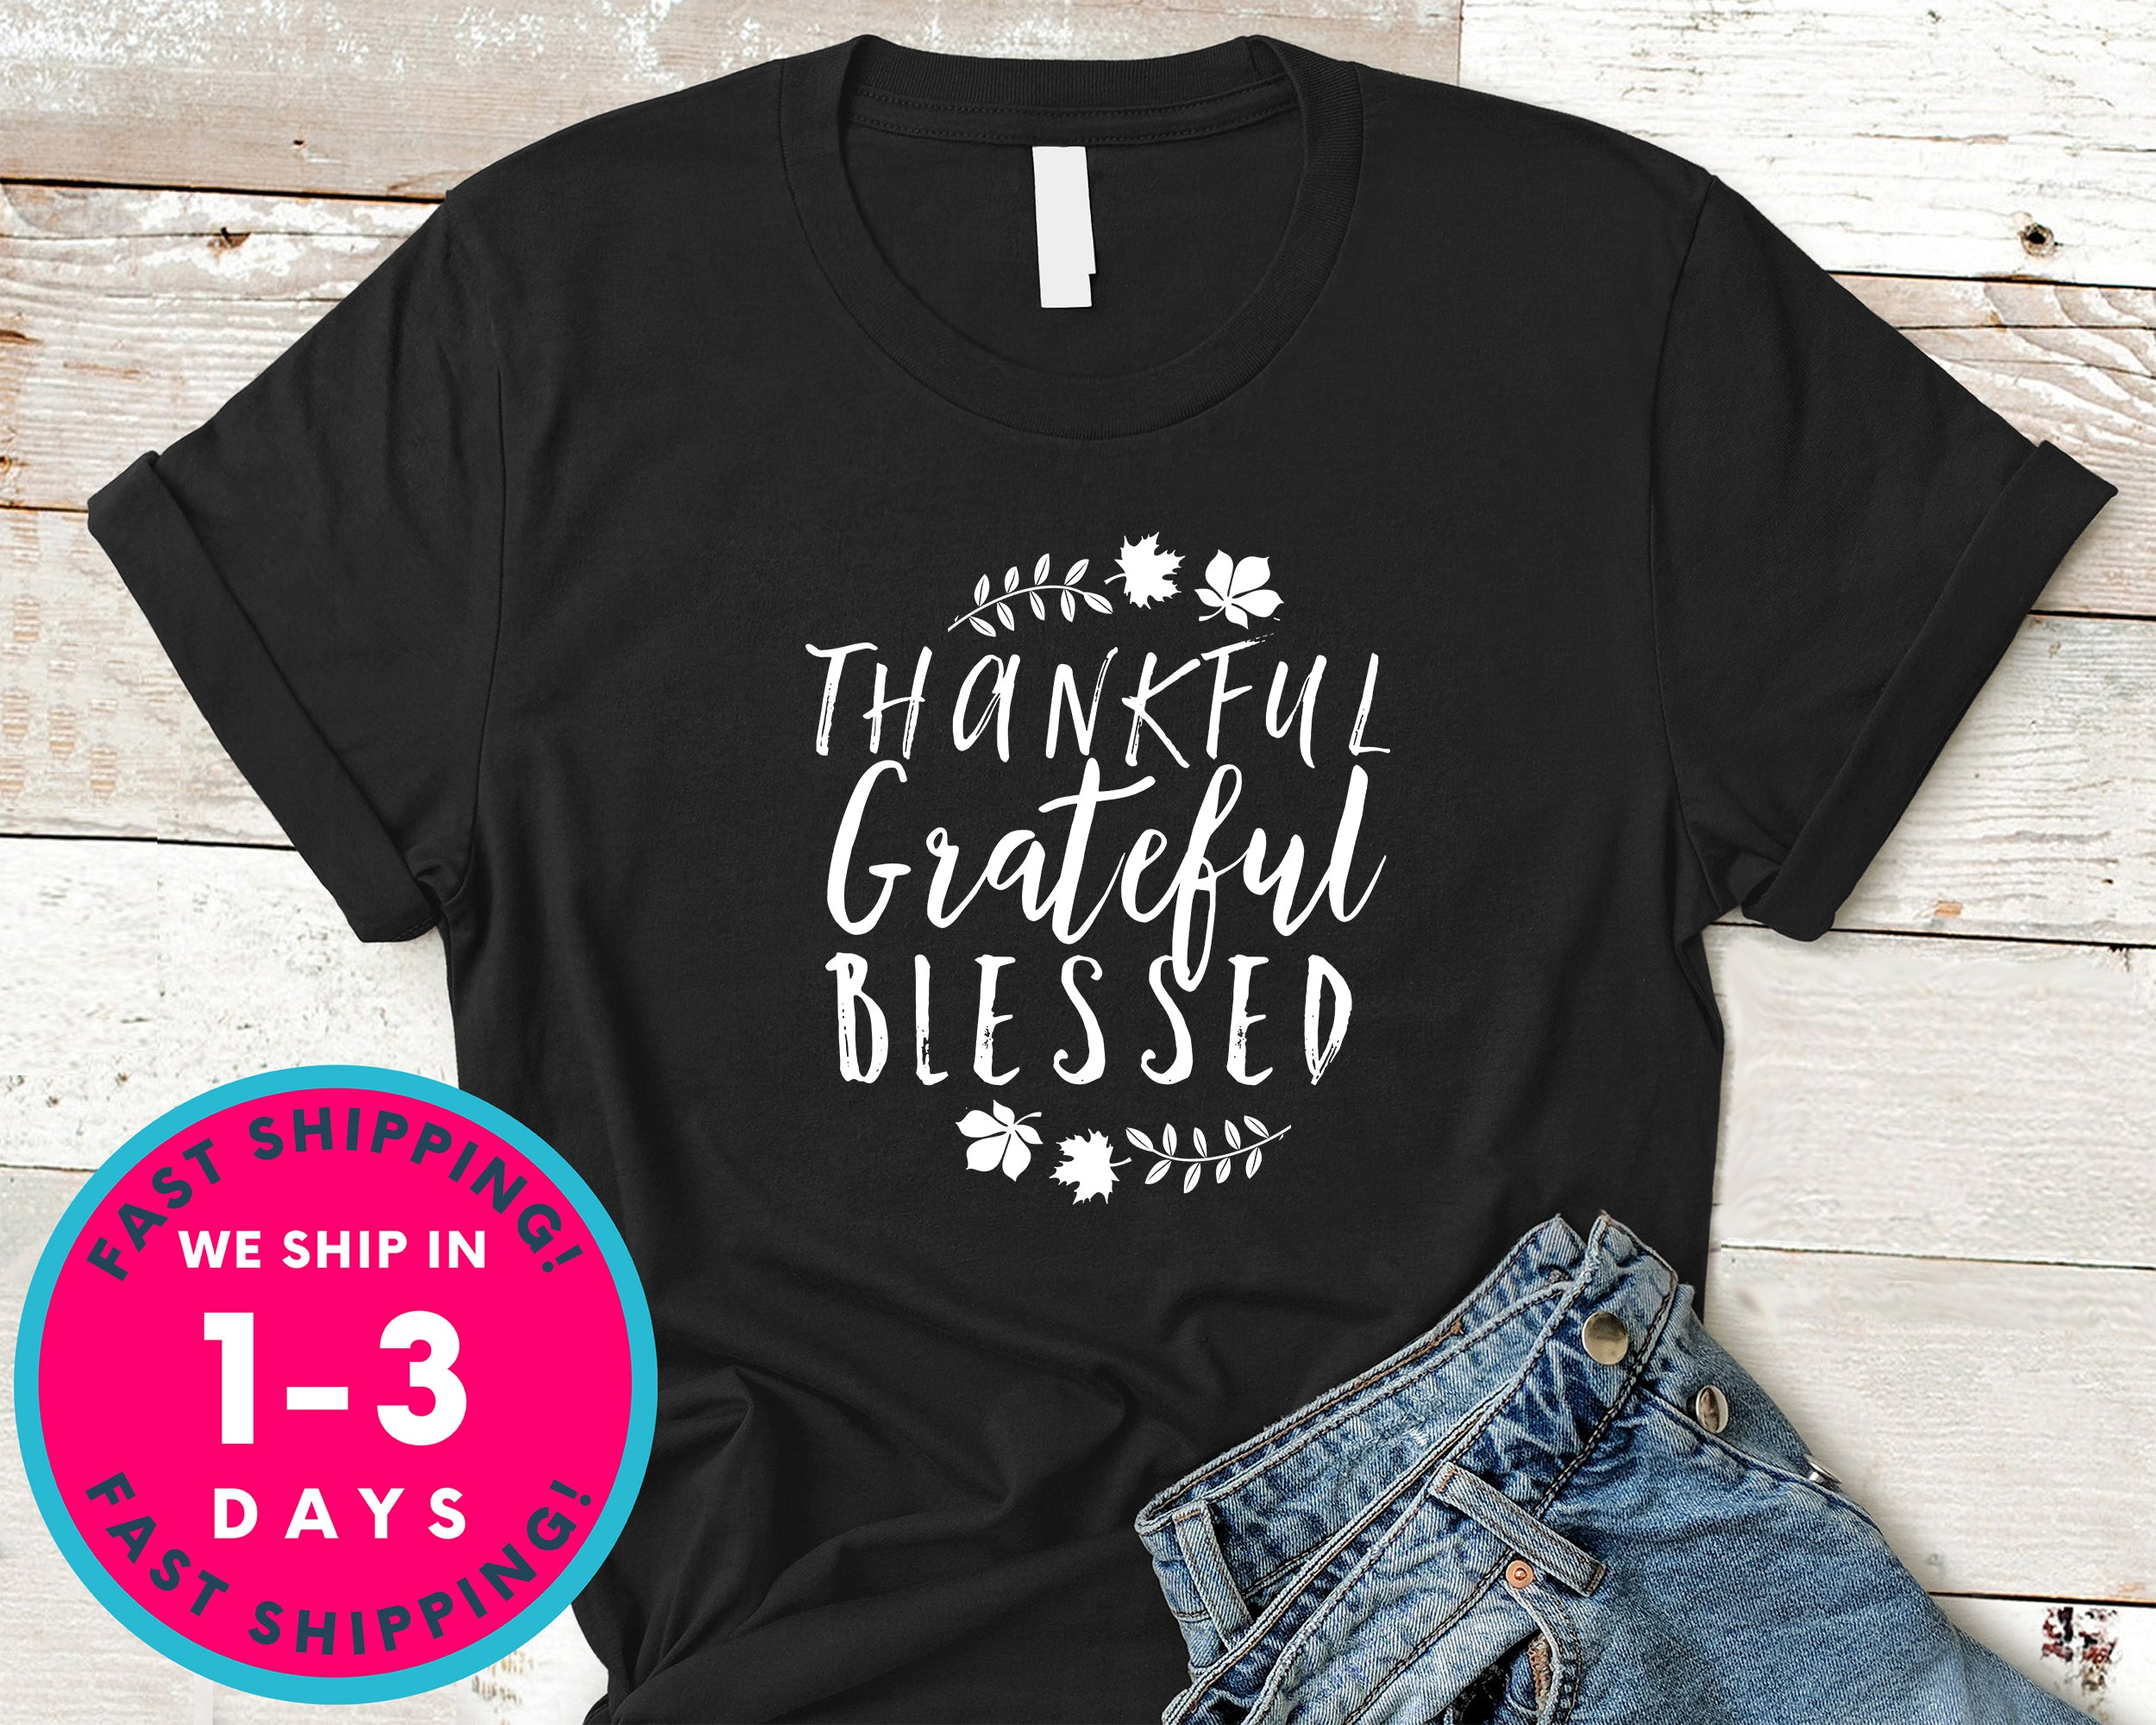 Thankful Grateful Blessed T-Shirt - Autmn Fall Thanksgiving Shirt